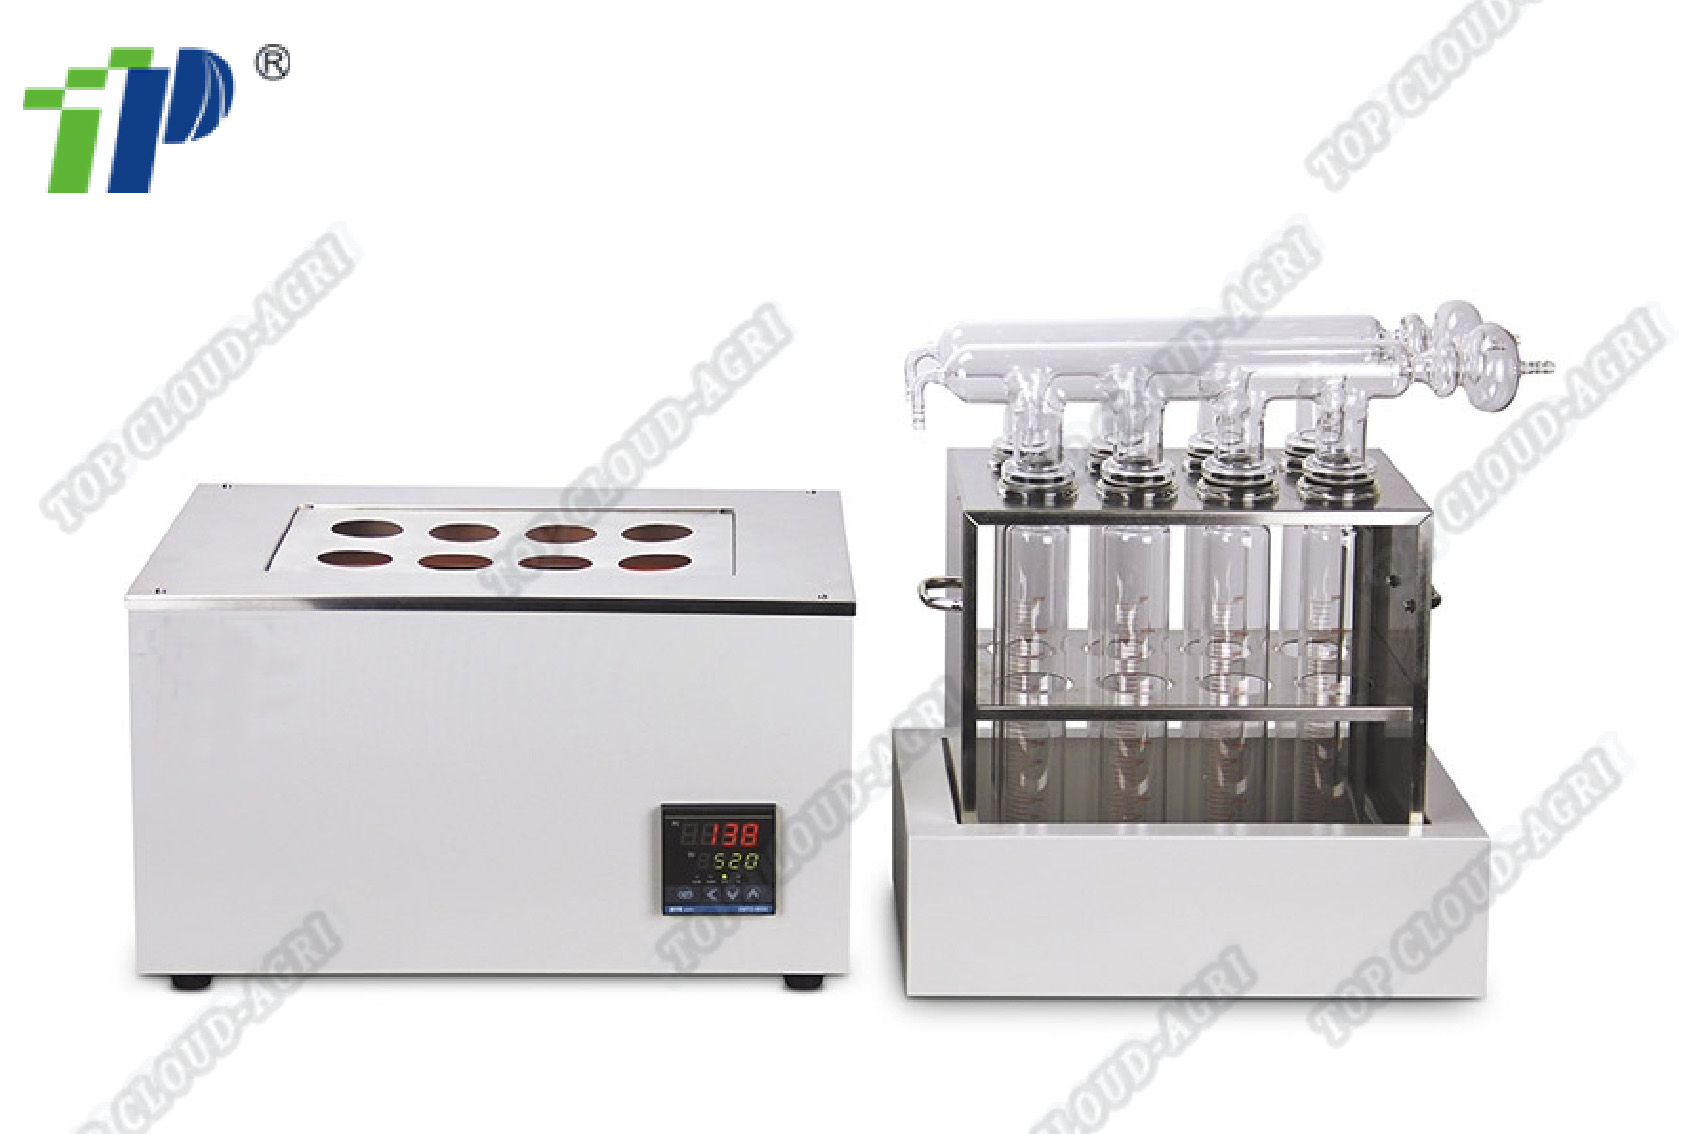 Digital Infrared Digestive Furnace